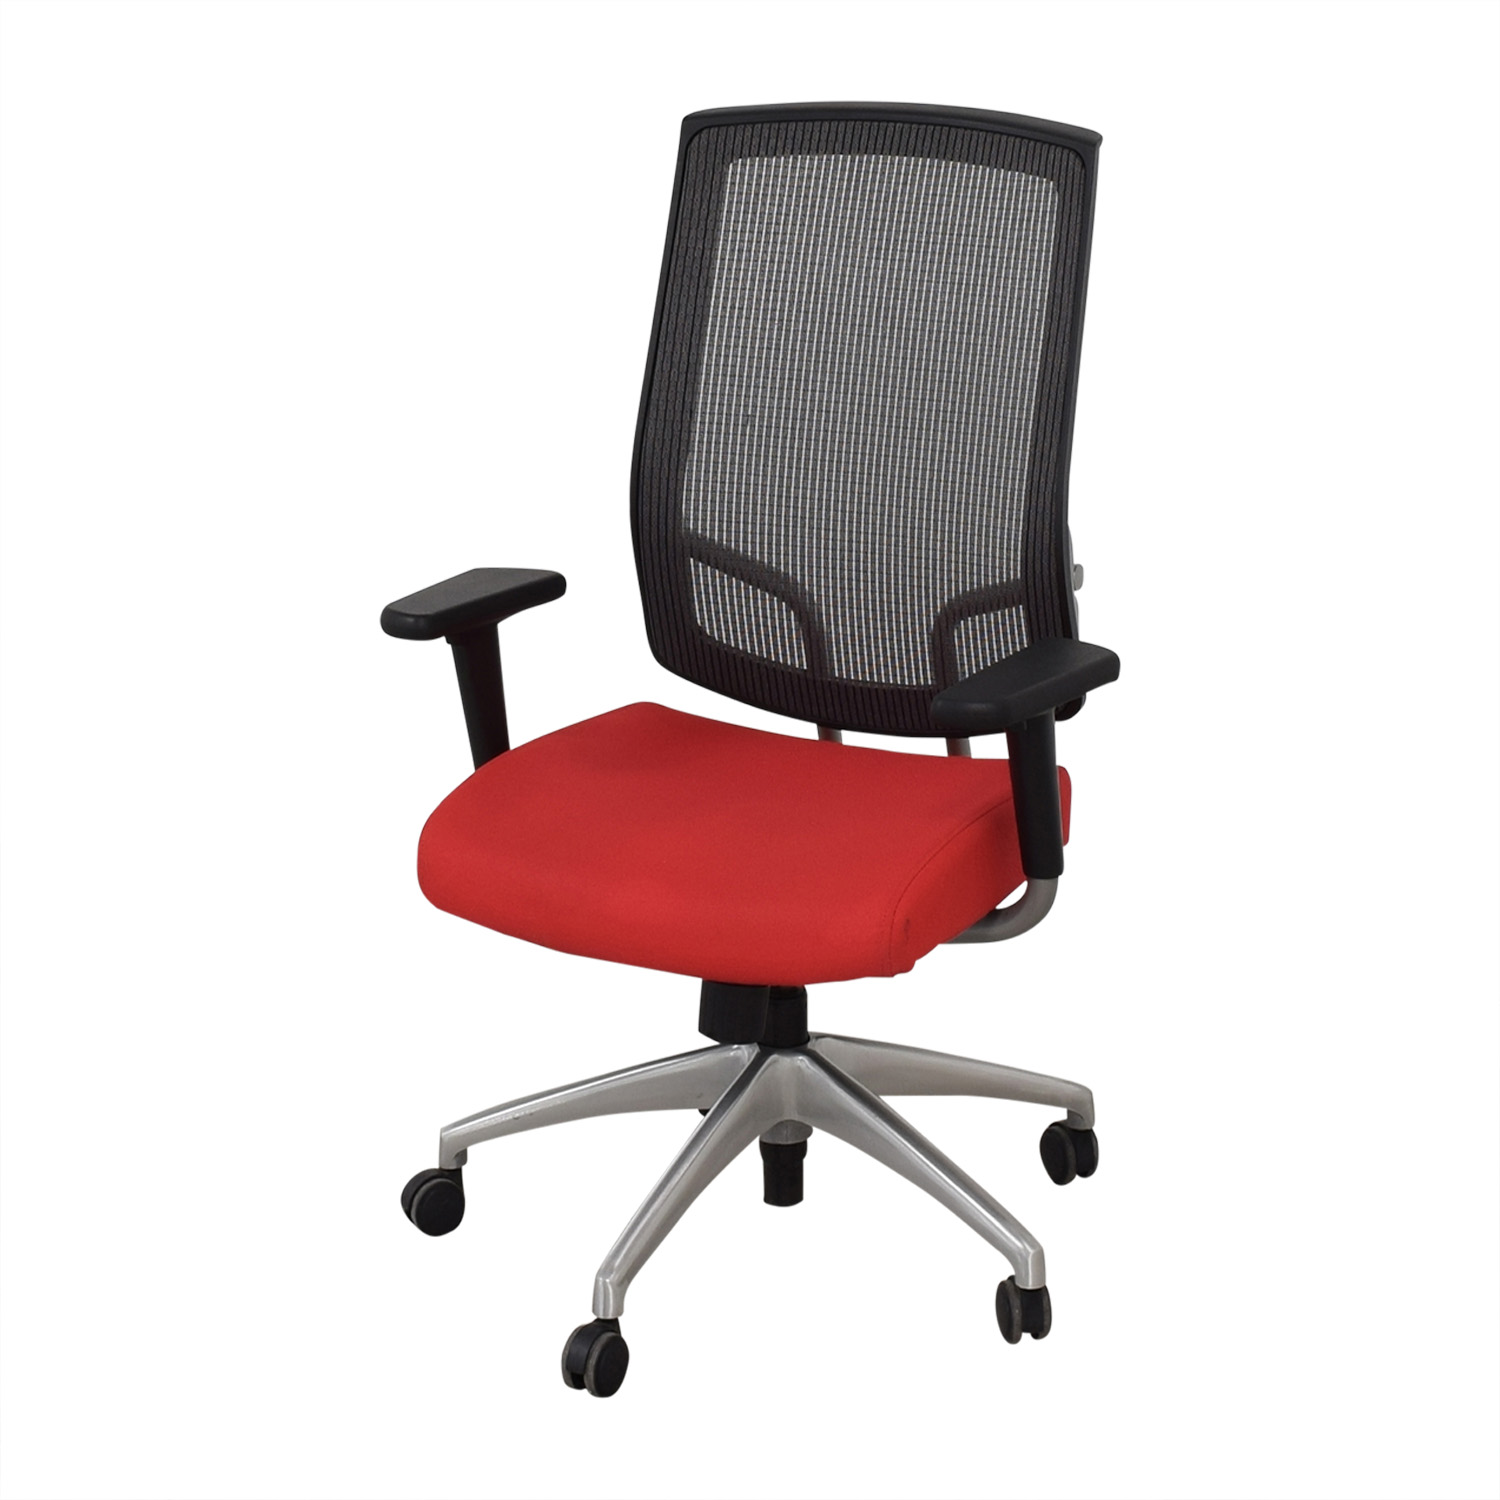 SitOnIt SitOnIt Focus High Back Office Chair second hand